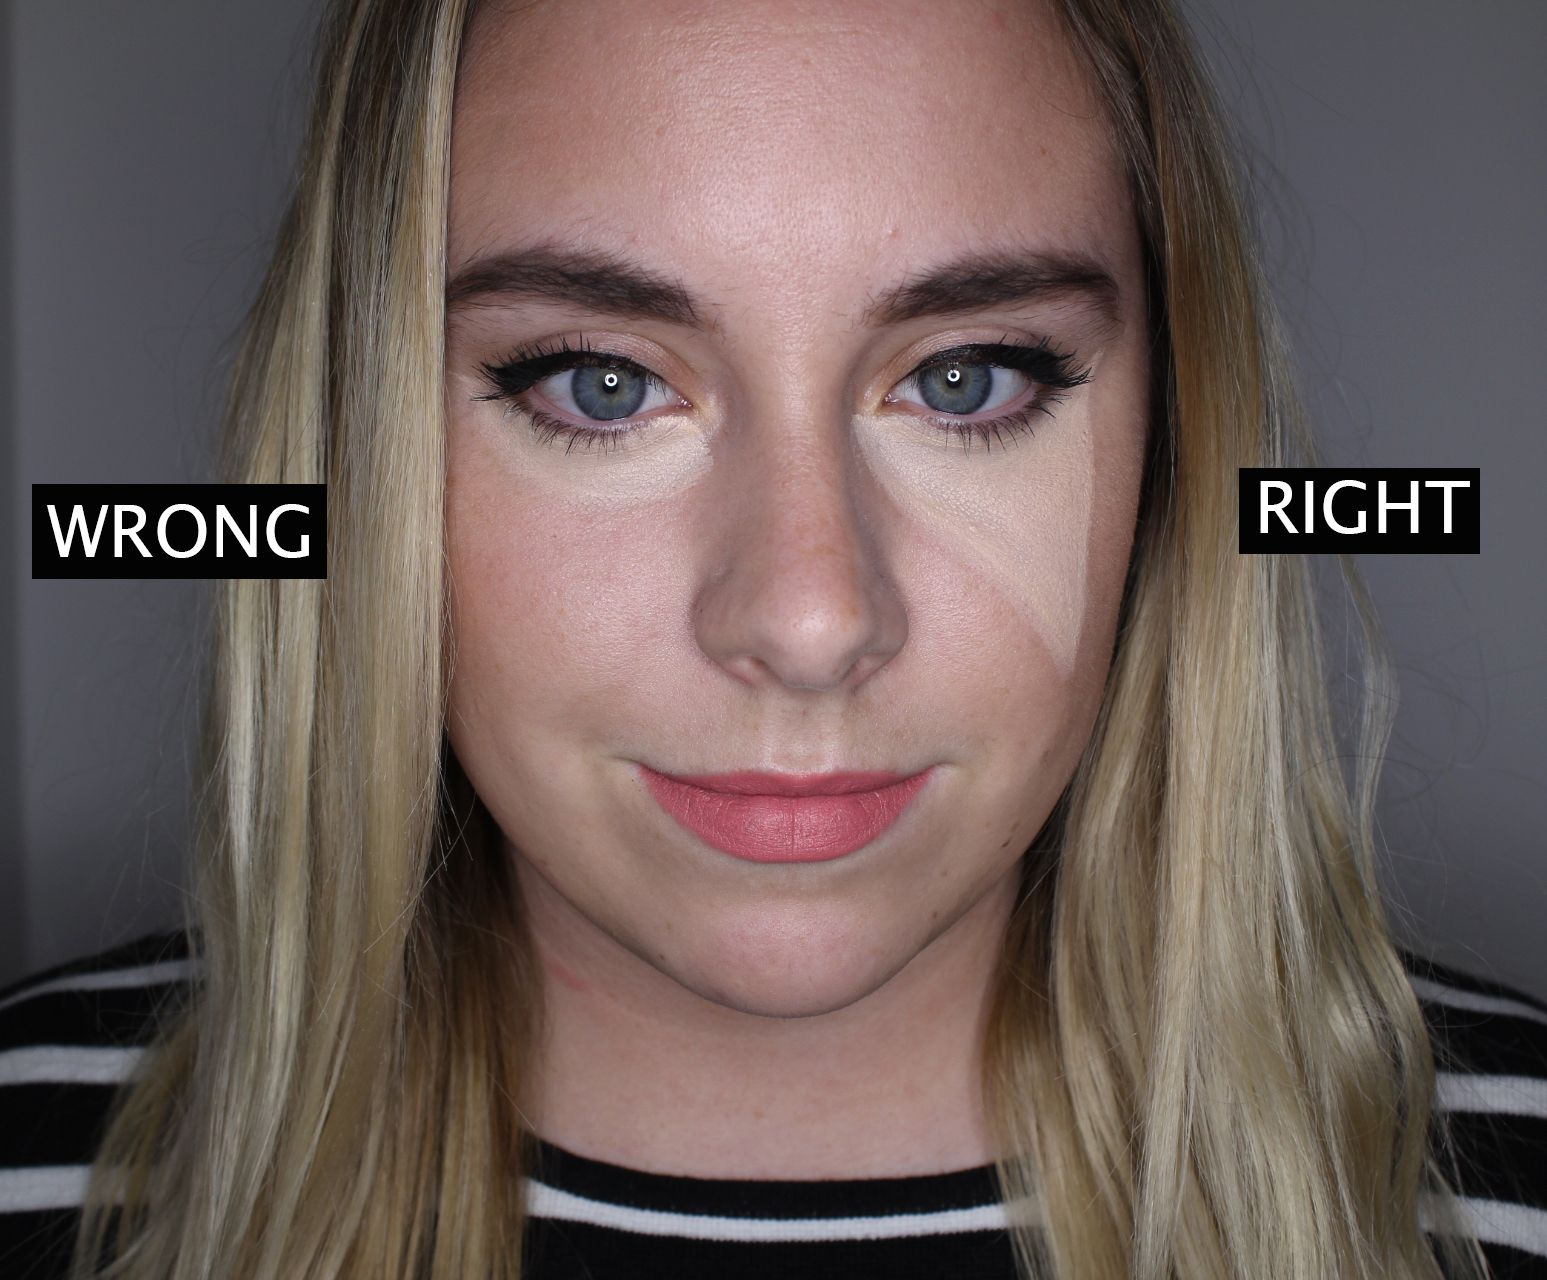 How To Make Your Eyes Look Bigger With And Without Makeup 10 Hacks